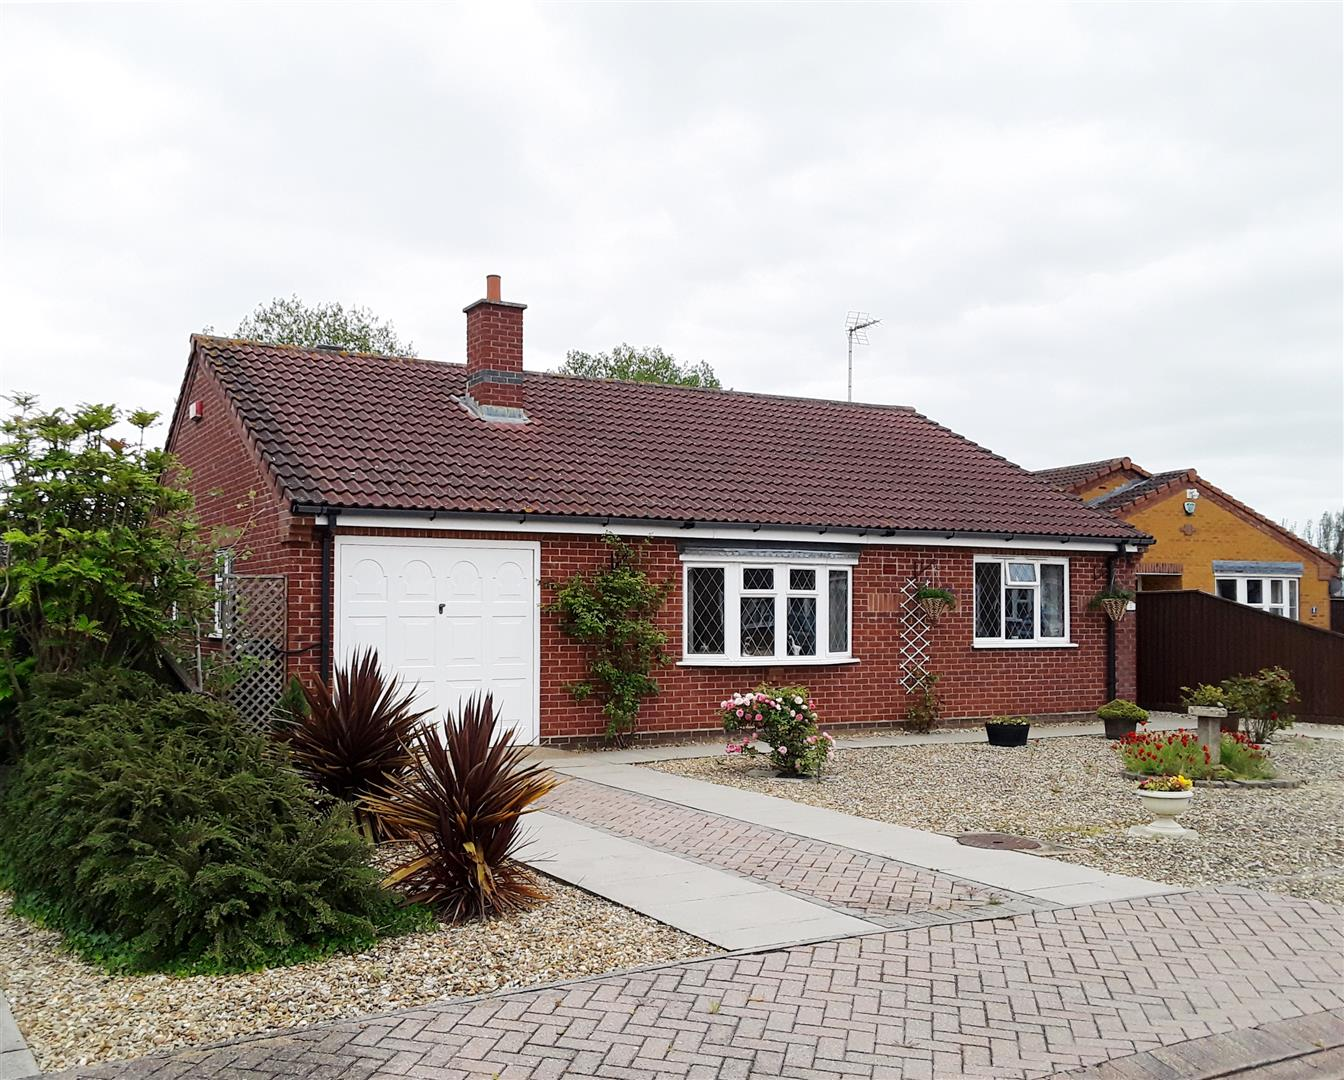 2 bed detached bungalow for sale in Long Sutton Spalding, PE12 9FP  - Property Image 1